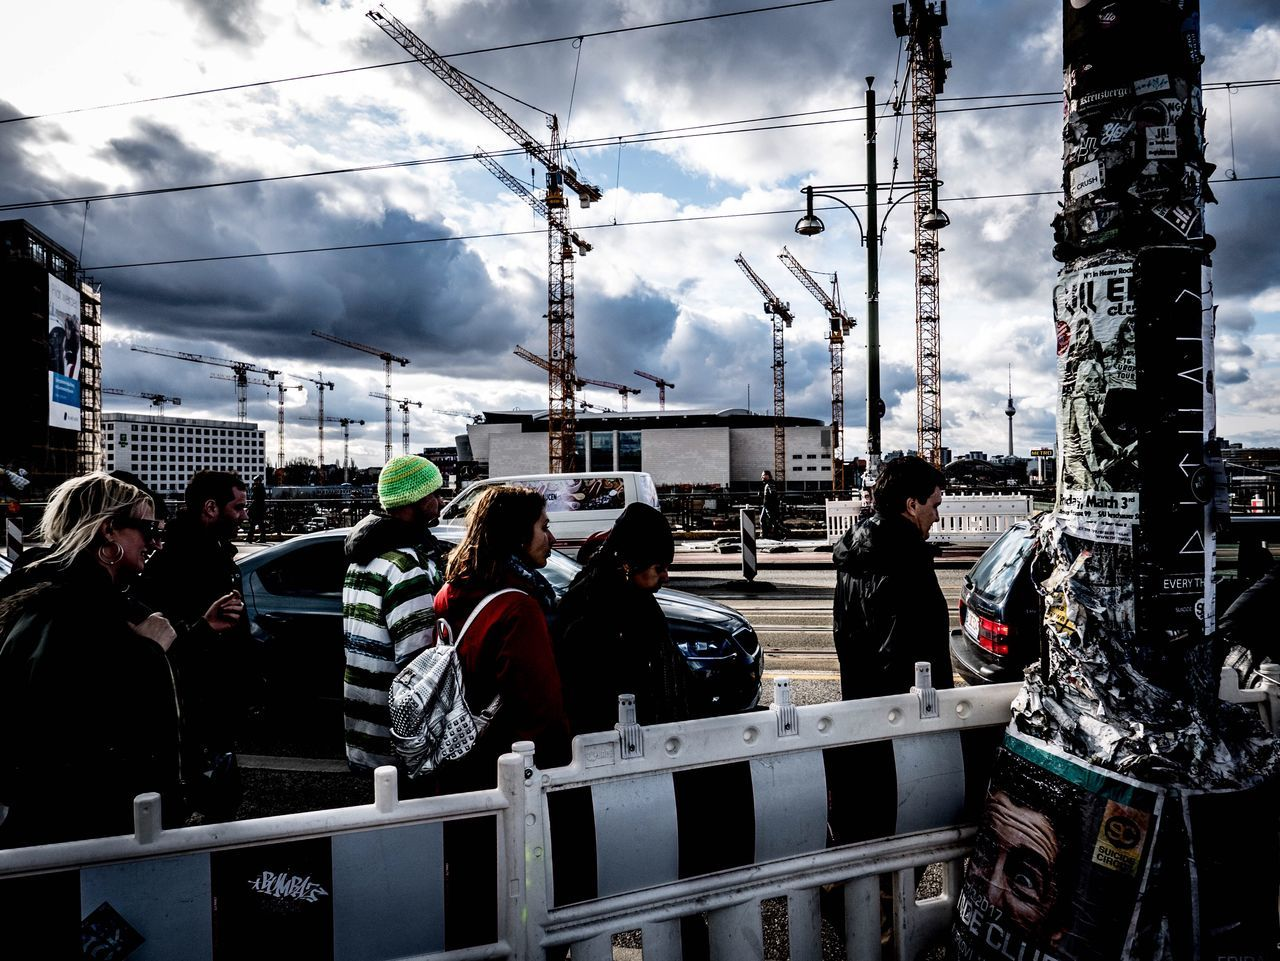 Everydaygermany Transportation Sky Cloud - Sky Men Real People Public Transportation Outdoors Large Group Of People Day People Adults Only Adult Boat Deck